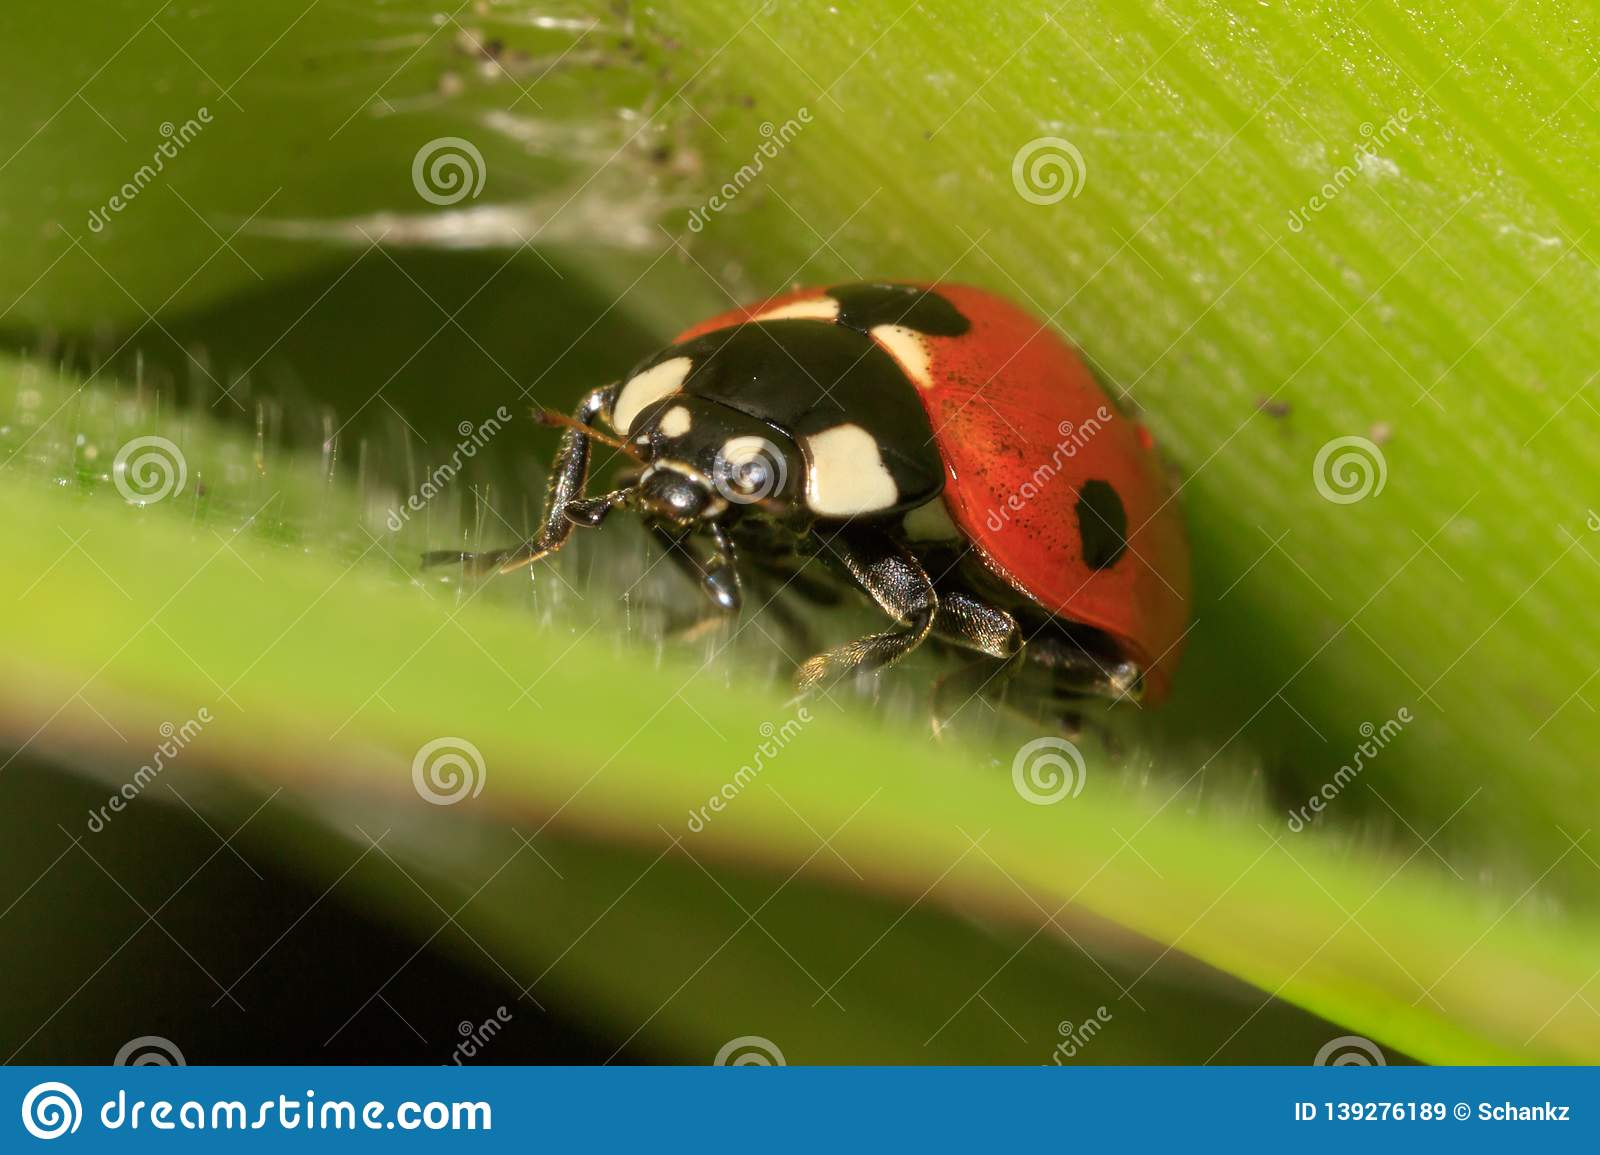 Ladybug on a plant in nature